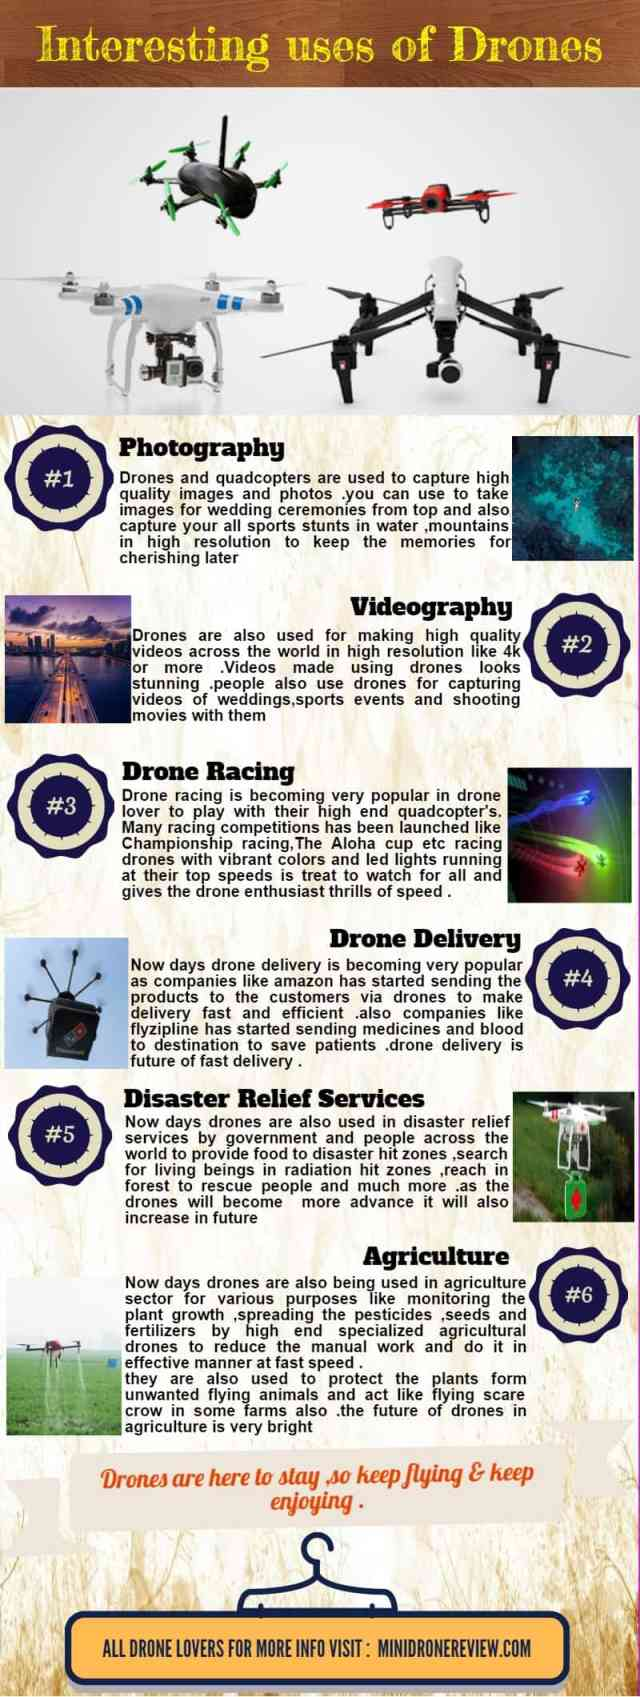 Interesting uses of drones